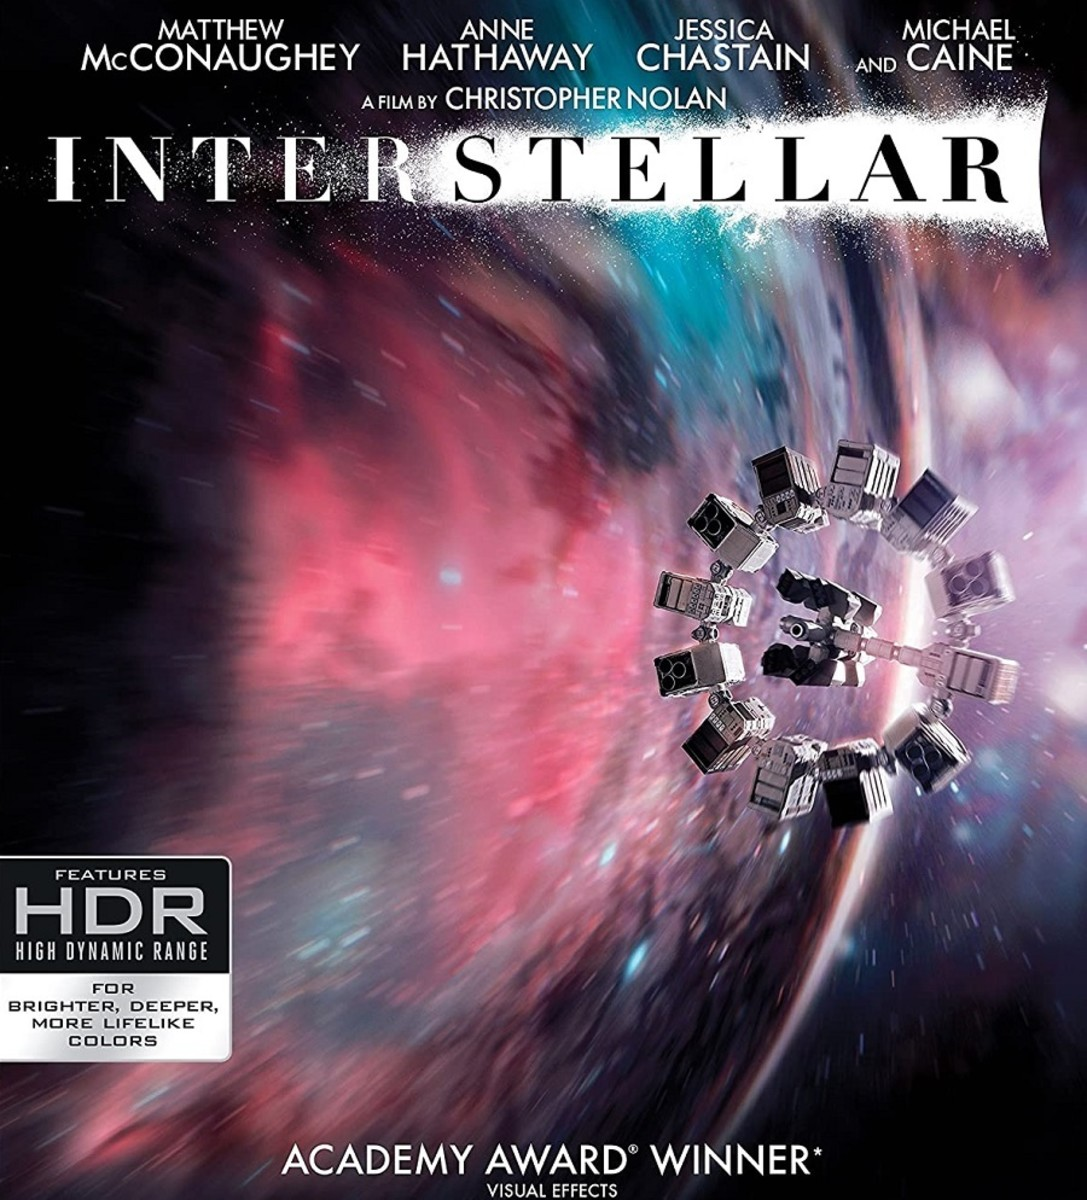 Interstellar - One of the best space travel films ever made.